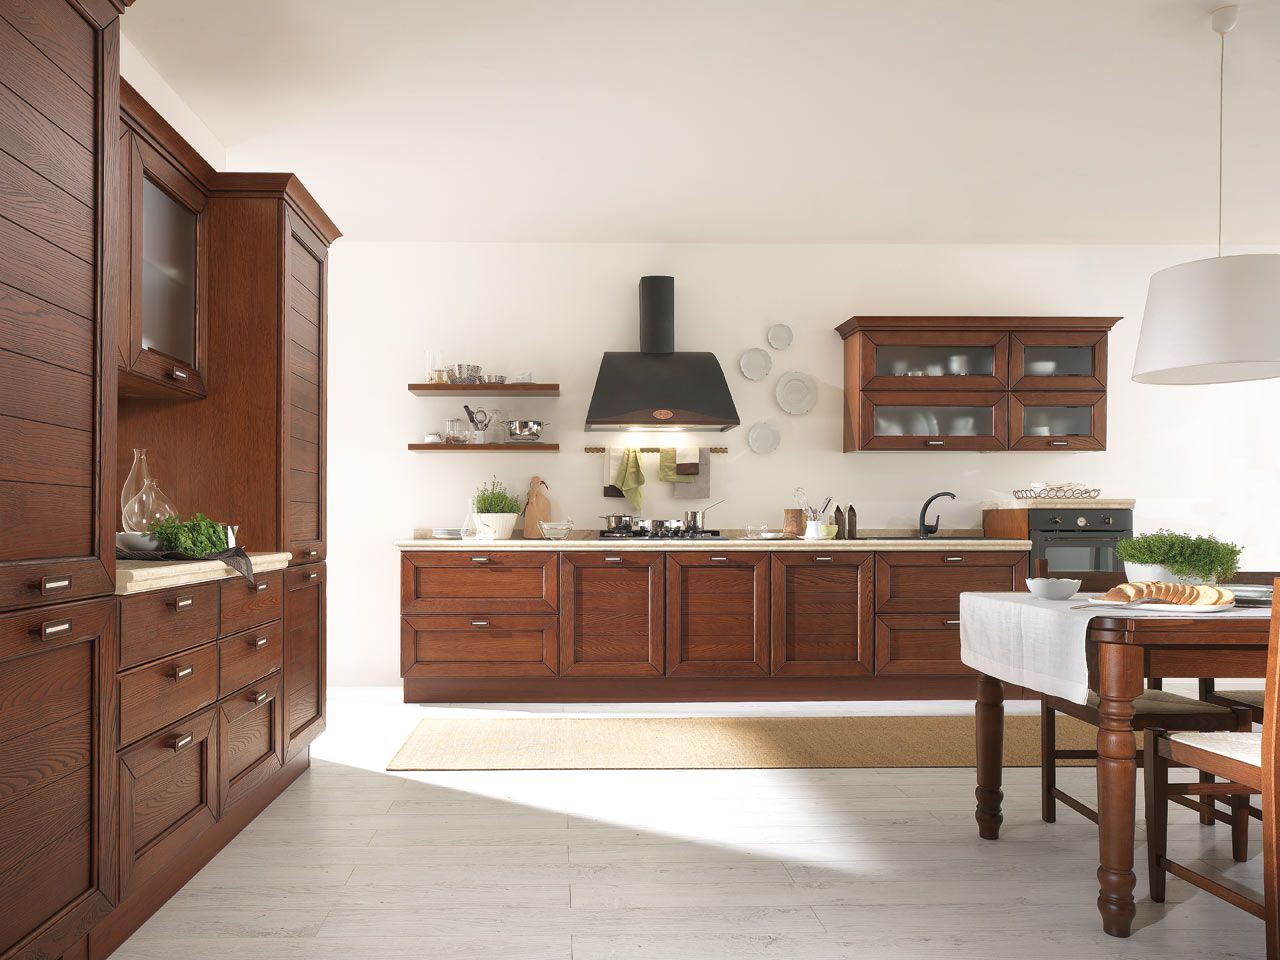 A #kitchen that can be interpreted in a #classic key, its #natural version, and yet a #contemporary option too, with a beauty that will certainly surprise. Claudia is the new solid #wood #kitchen available in three different finishes with 5 warm shades. #LUBE offers accessories for organising every wall unit. base unit and drawer in your #kitchen such as Pull-Out Baskets, Under-Oven Drawer, Telescopic Runners and The Upper Deep Drawer that make the most of your space.